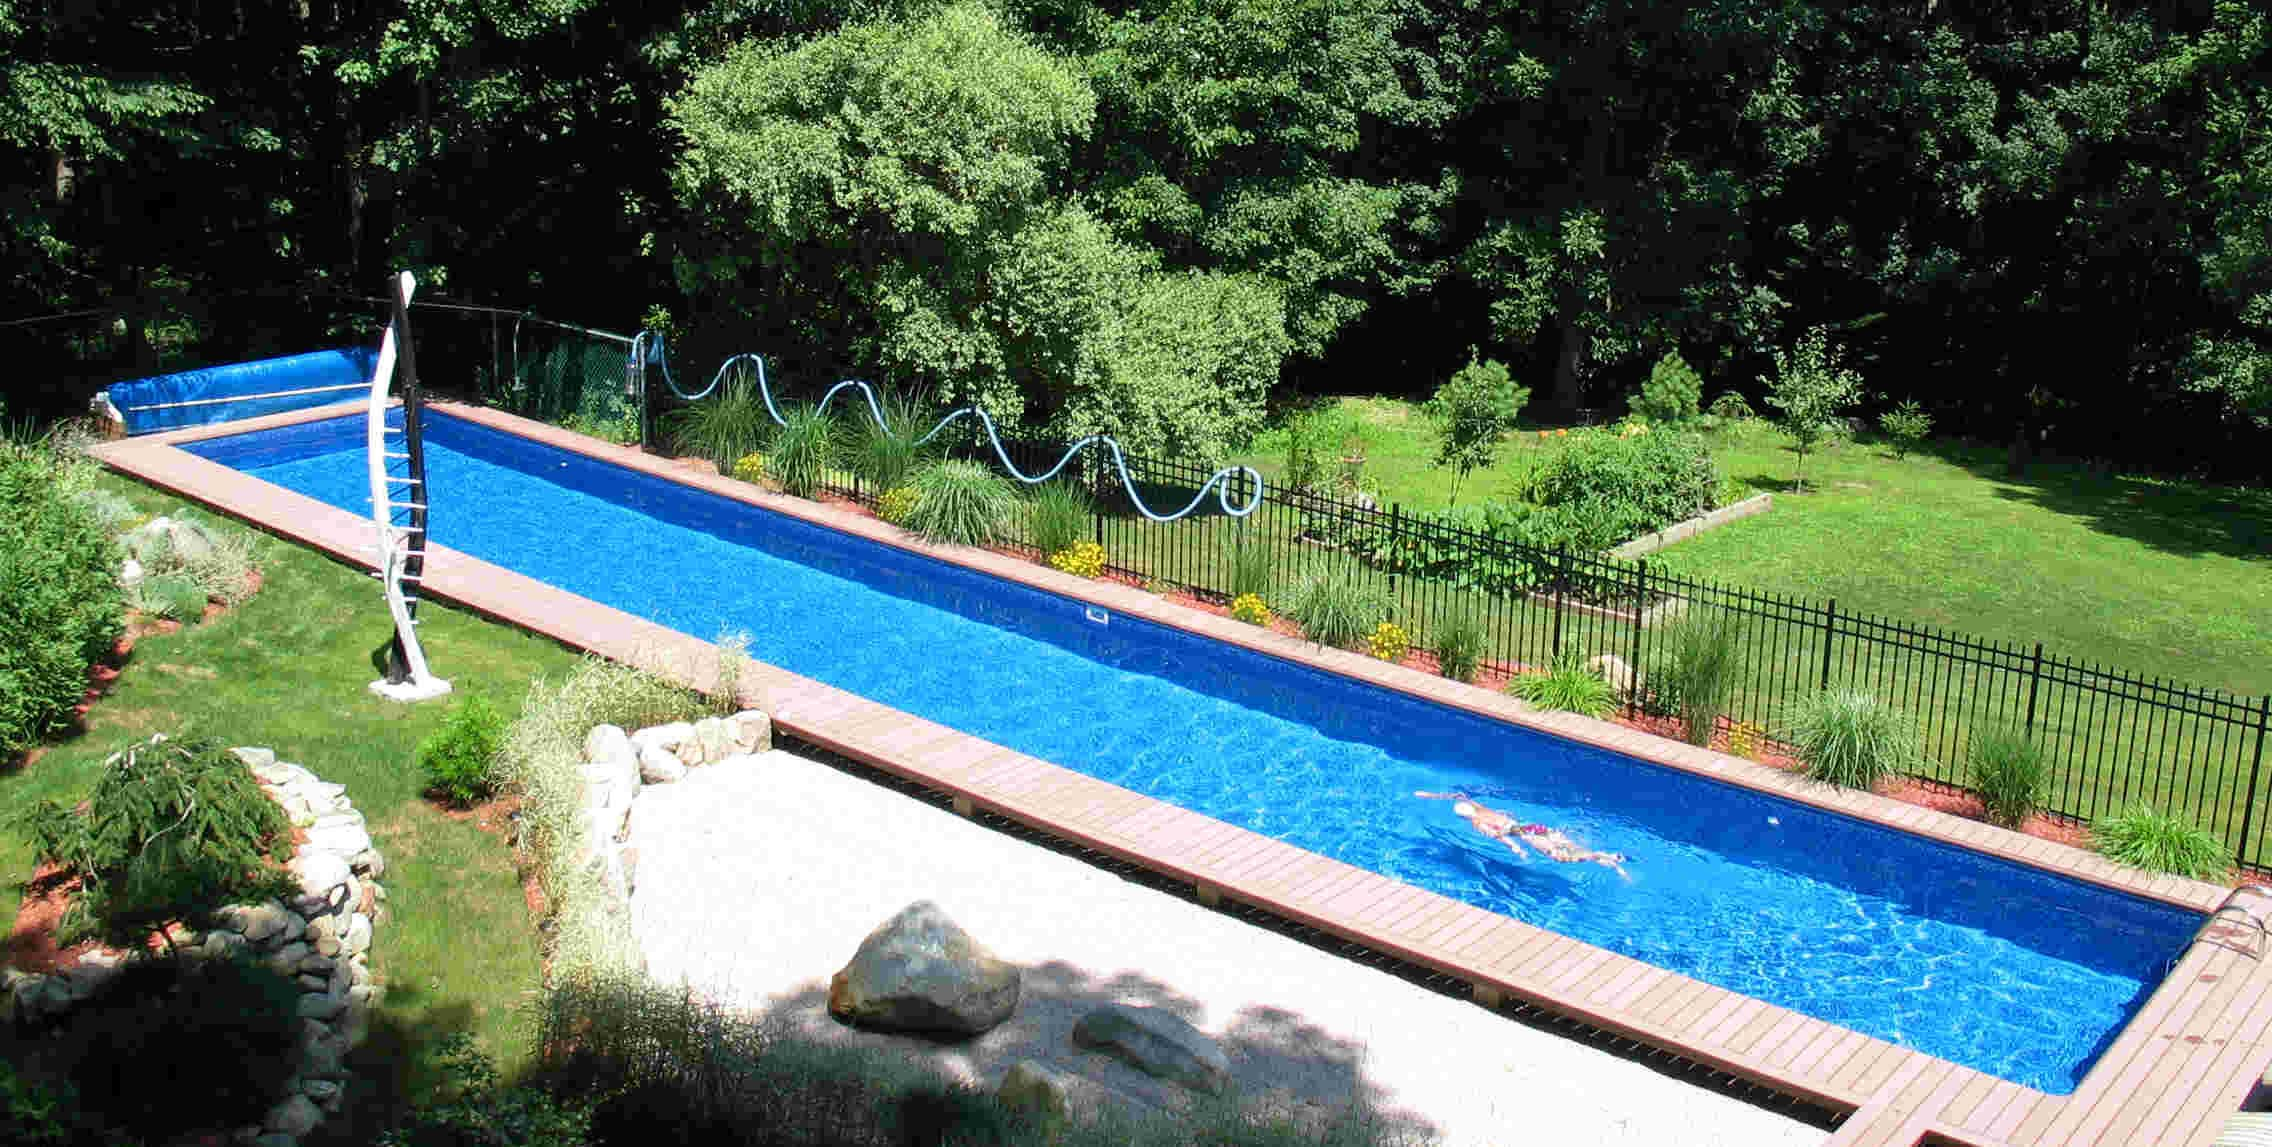 Diy inground swimming pool backyard design ideas for Ideas for a pool